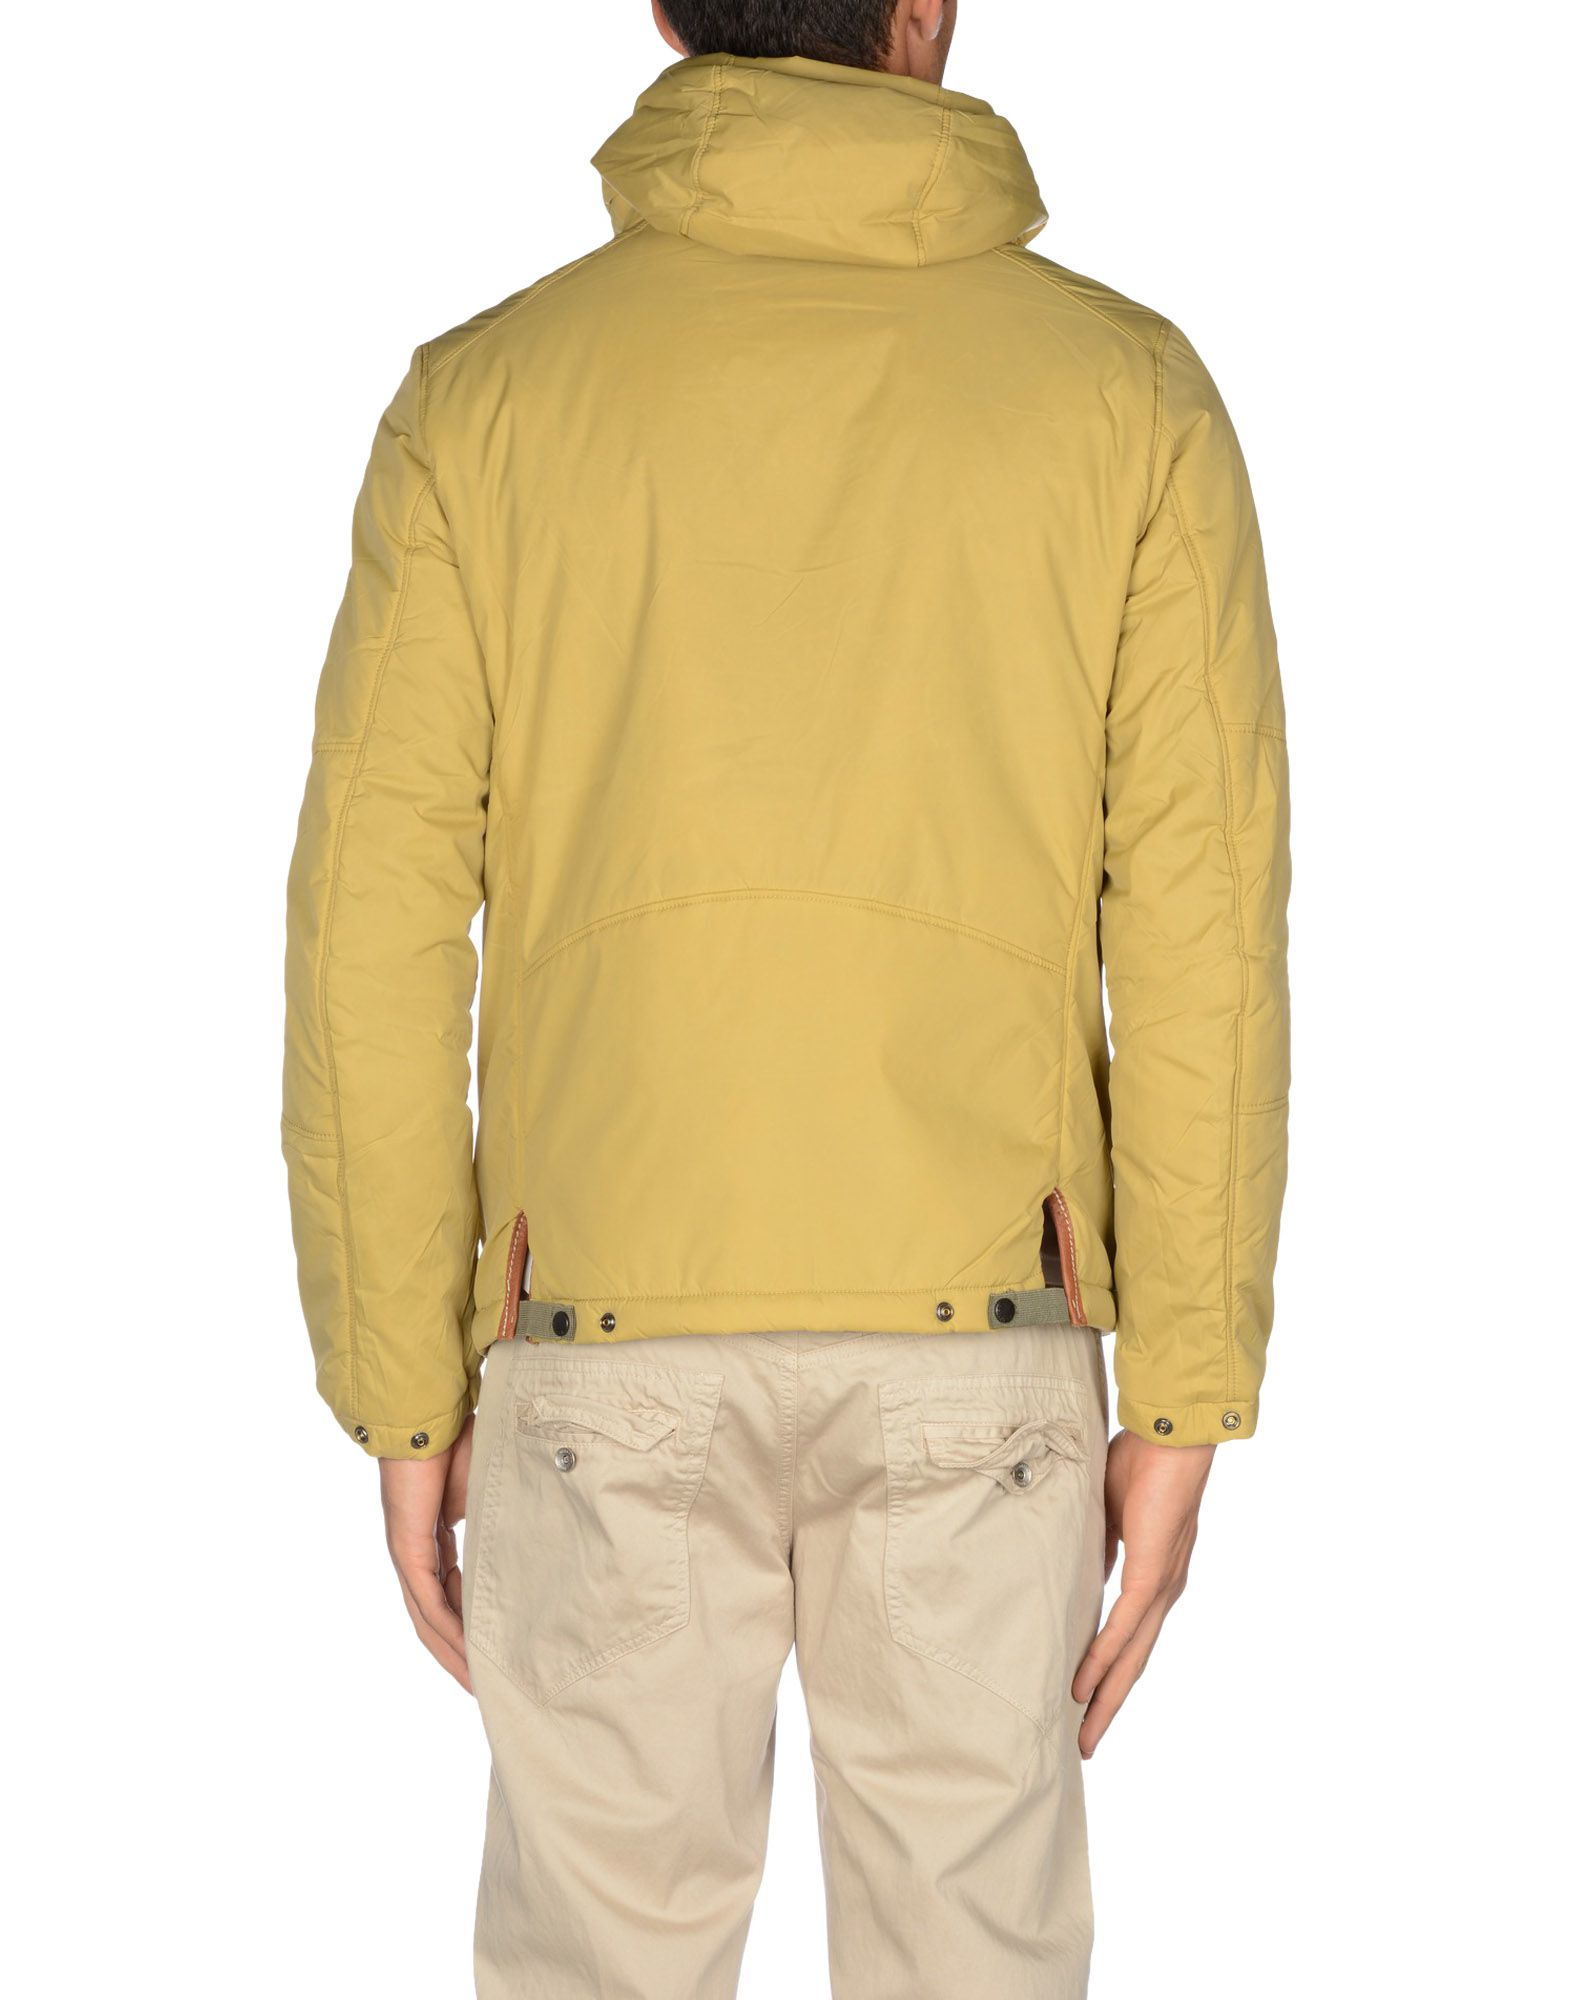 lyst replay jacket in yellow for men